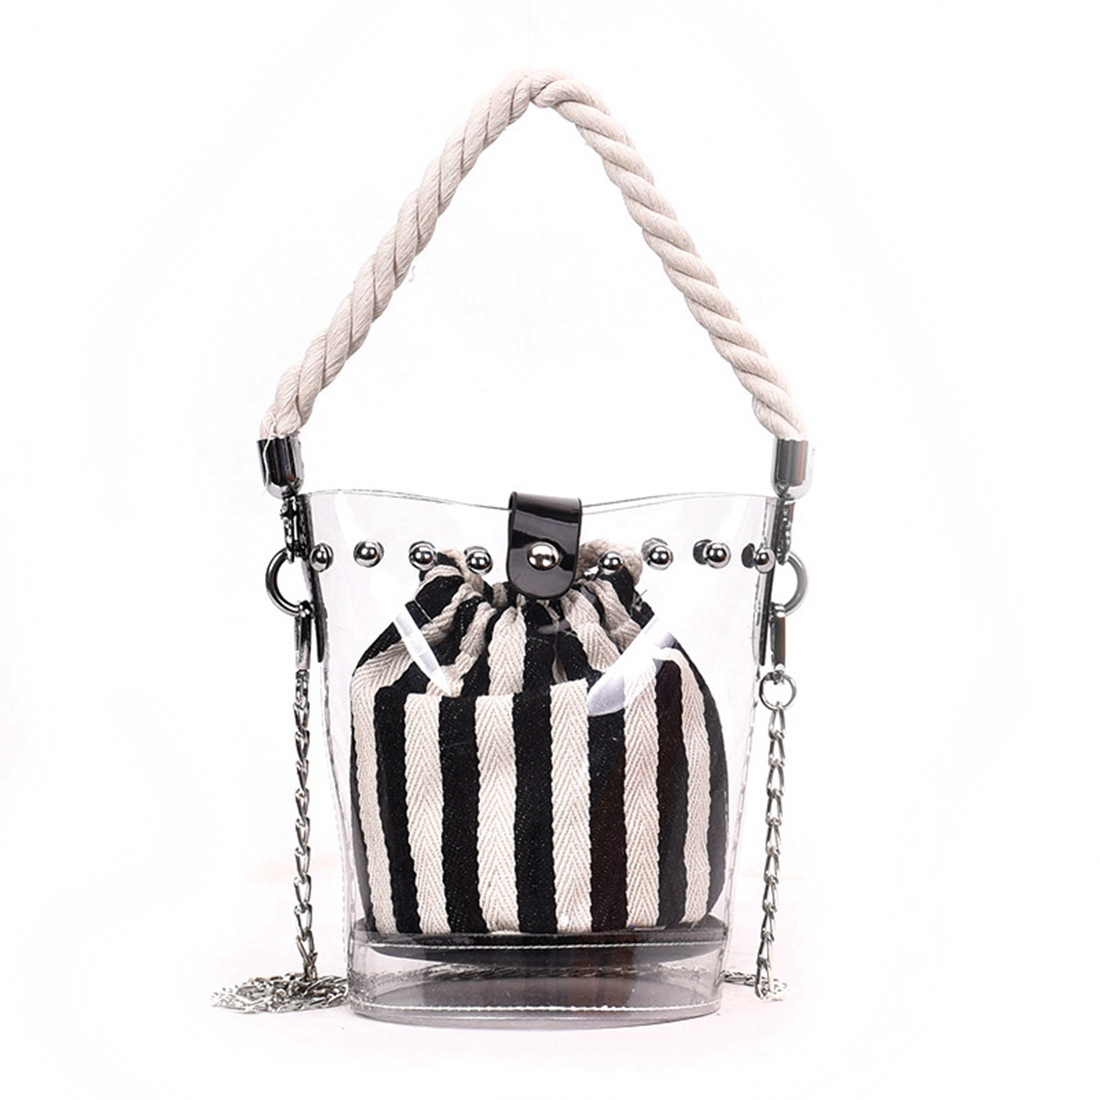 JHD Black New Fashion PVC Chain Diagonal Bag Fashion Transparent Hit color Stripe Rivet Hemp Single shoulder Diagonal Child ba